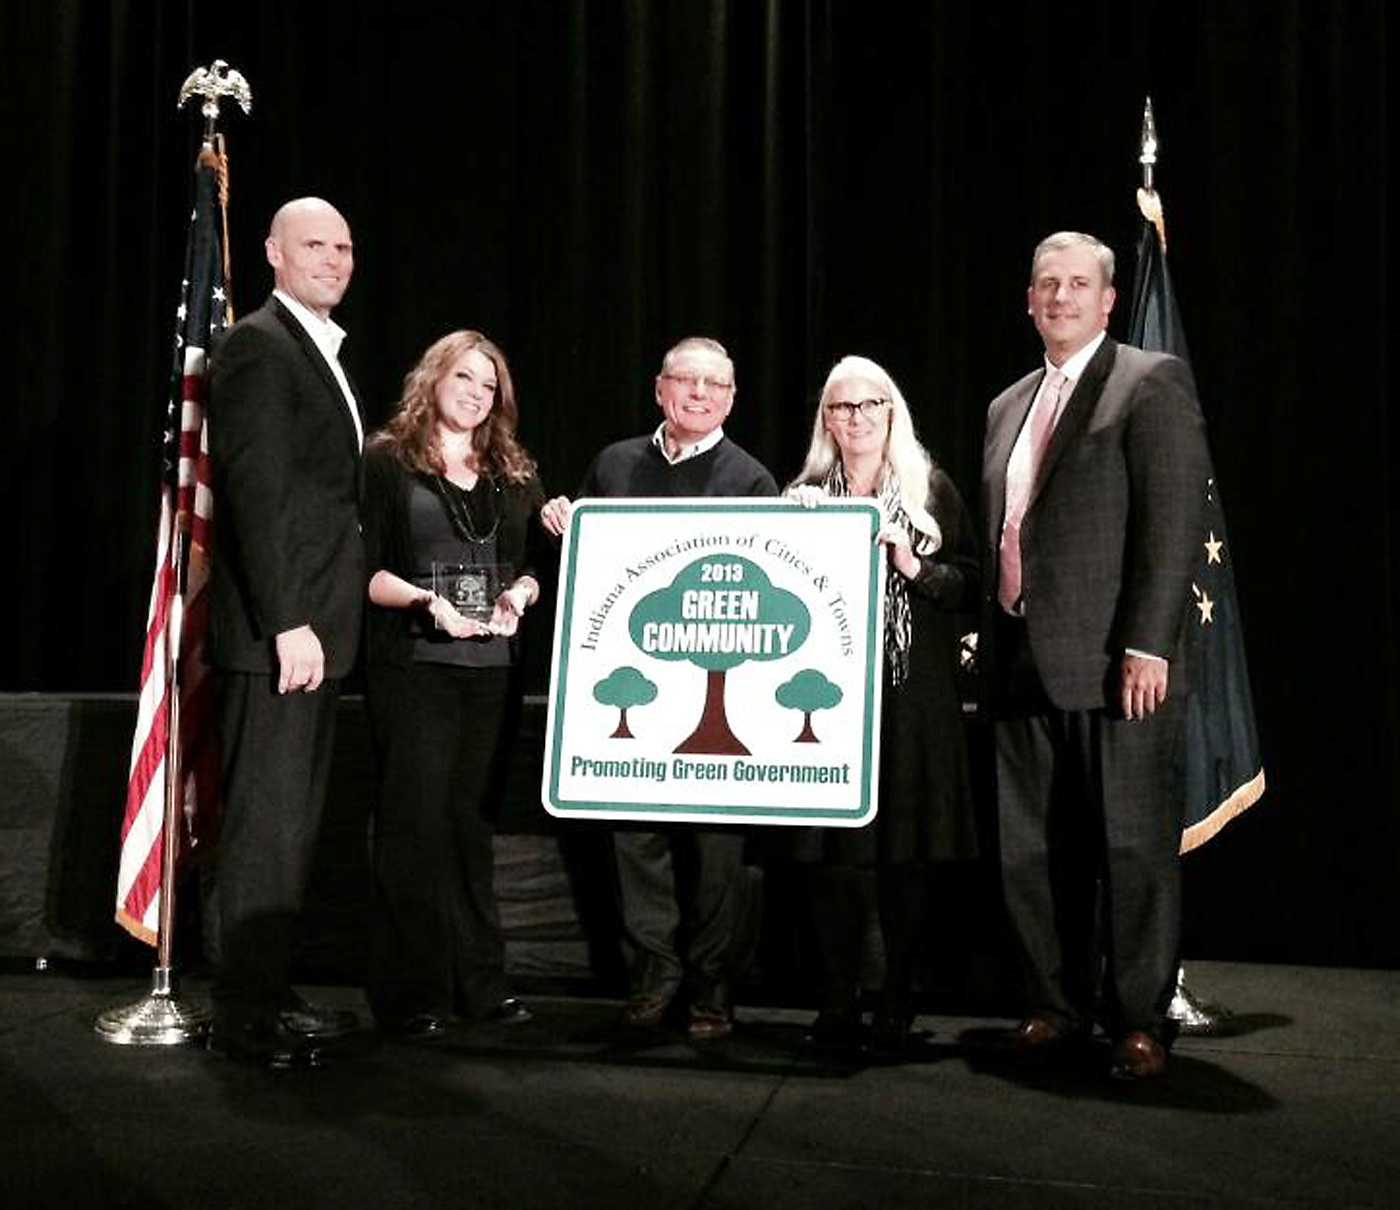 From left: Deputy Mayor Todd Burtron, Teresa Evans of Westfield's Communications Dept., City Council President Jim Ake, Parks and Recreation Director Melody Jones and IACT Executive Director Matt Greller. Indiana Association of Cities and Towns hold the city's Green Community of the Year award. (Submitted photo)